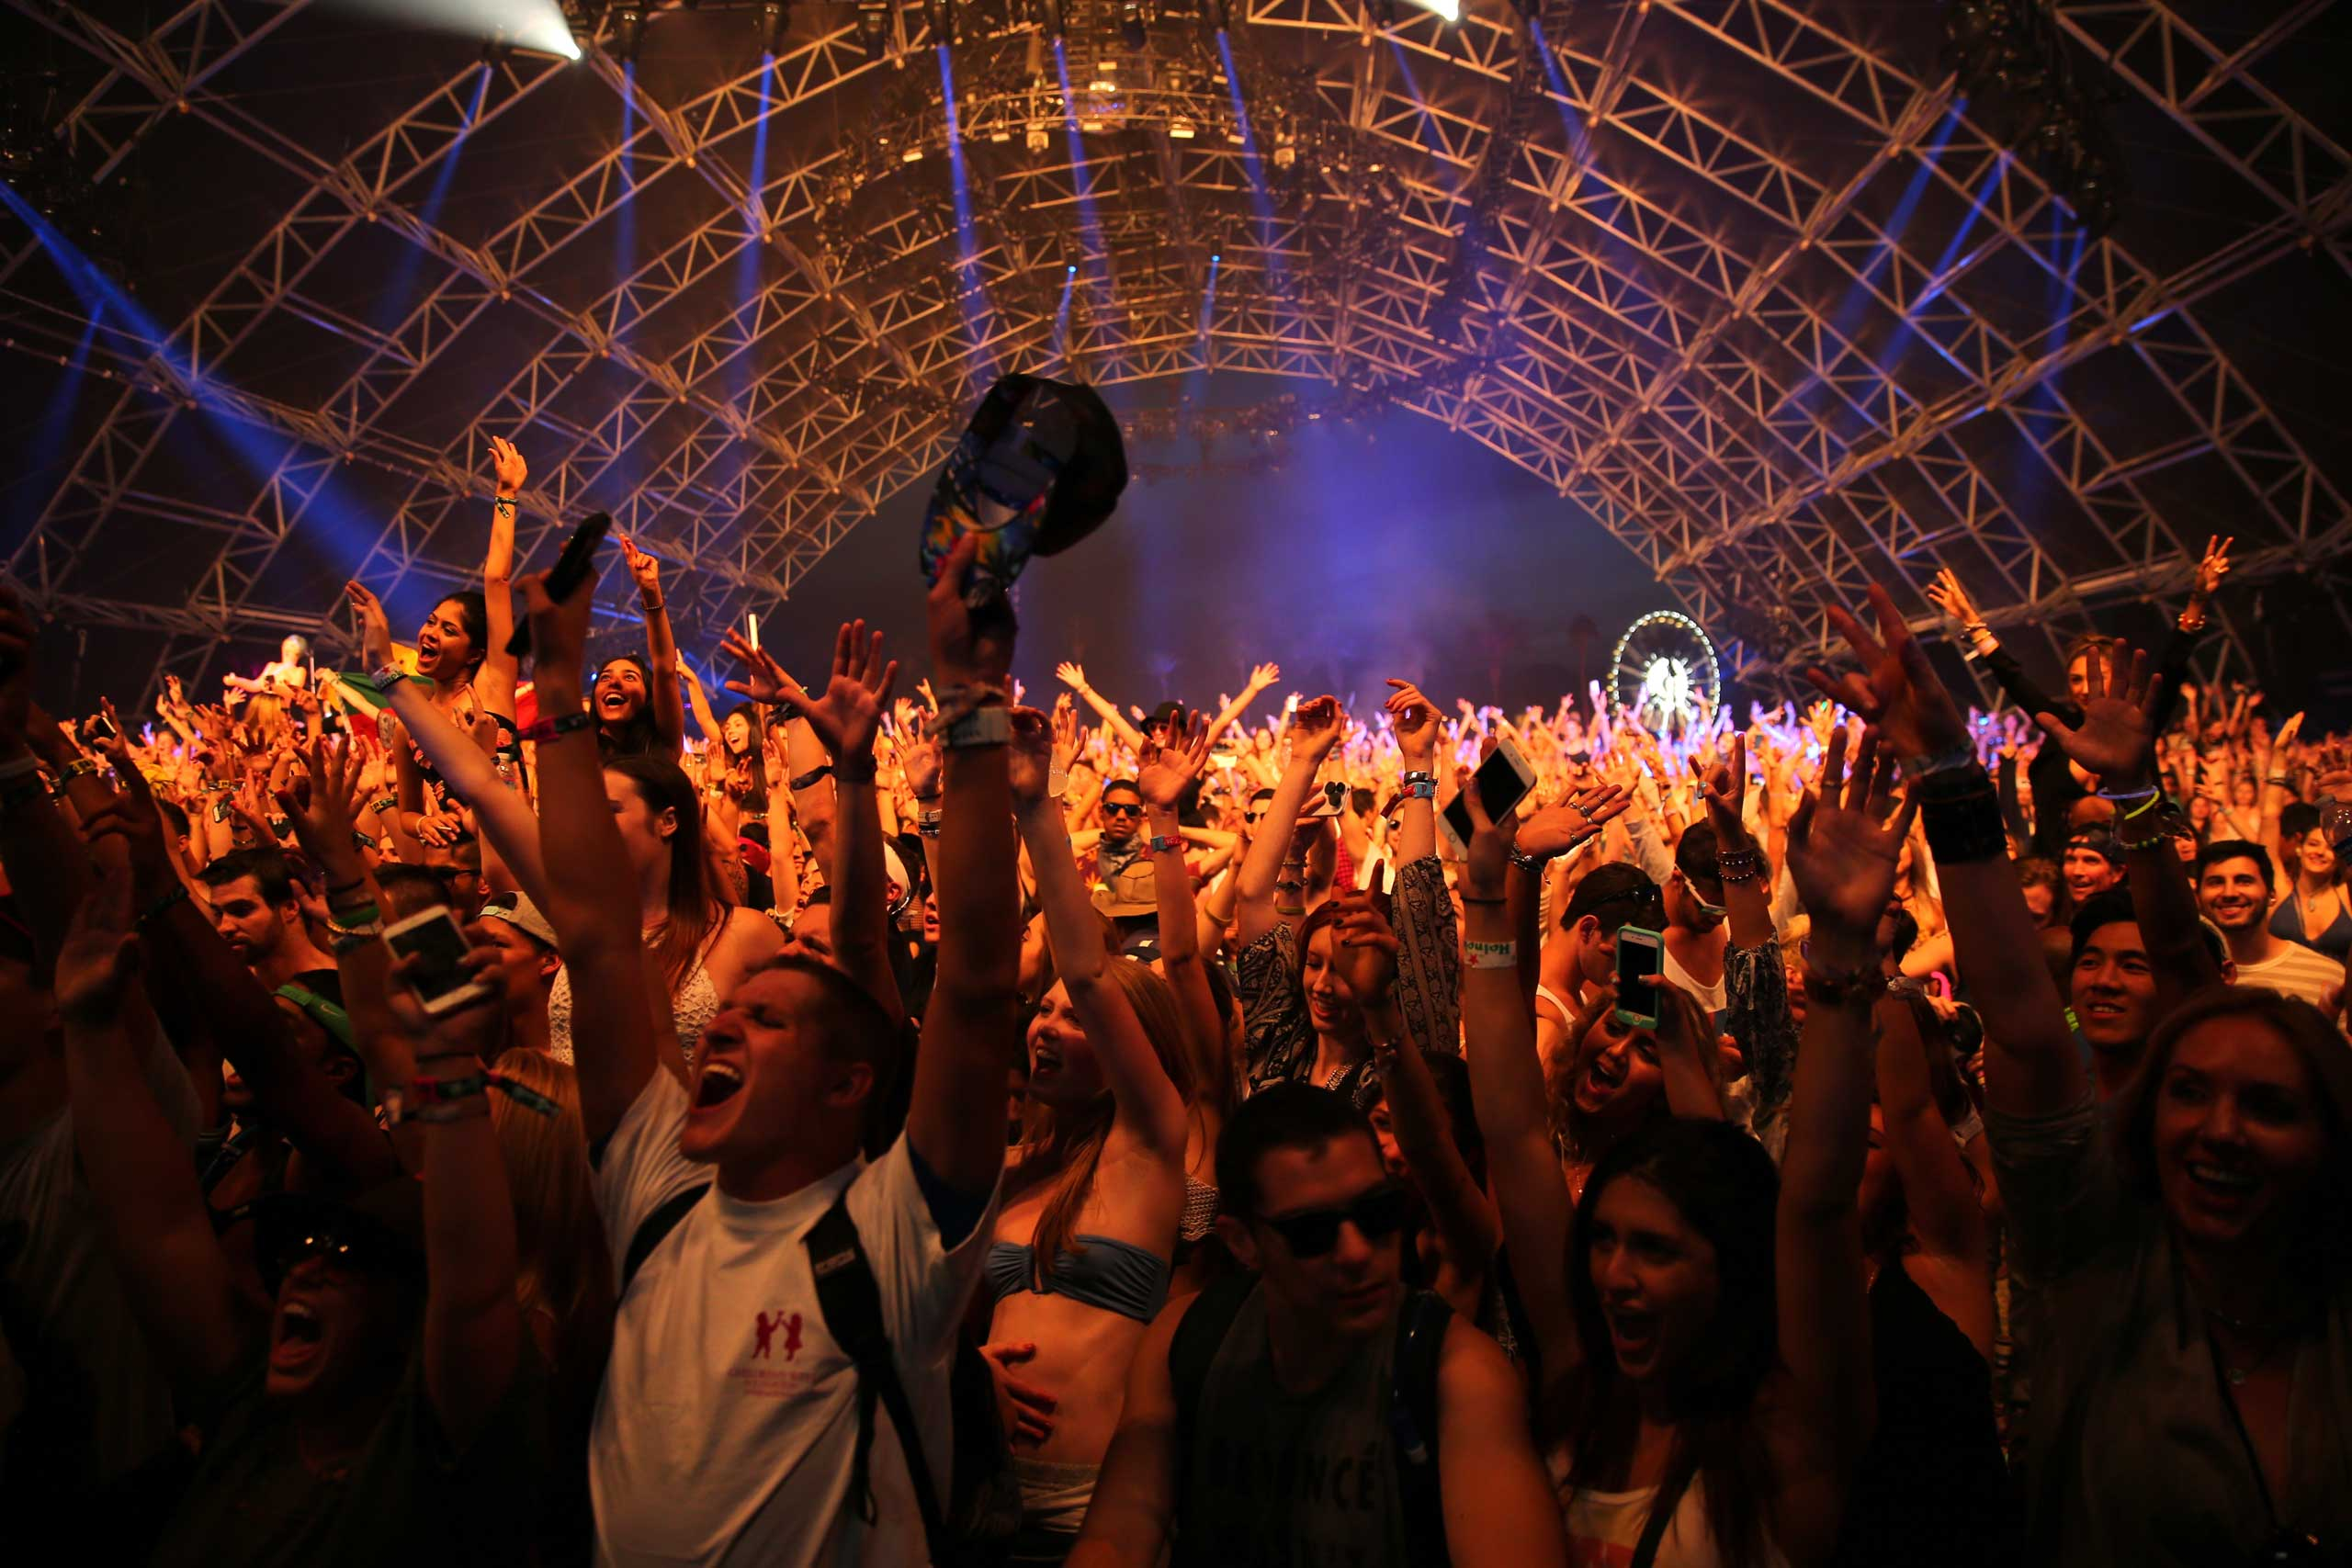 Music fans attend Coachella Valley Music & Arts Festival in Indio, Calif. on April 10, 2015.